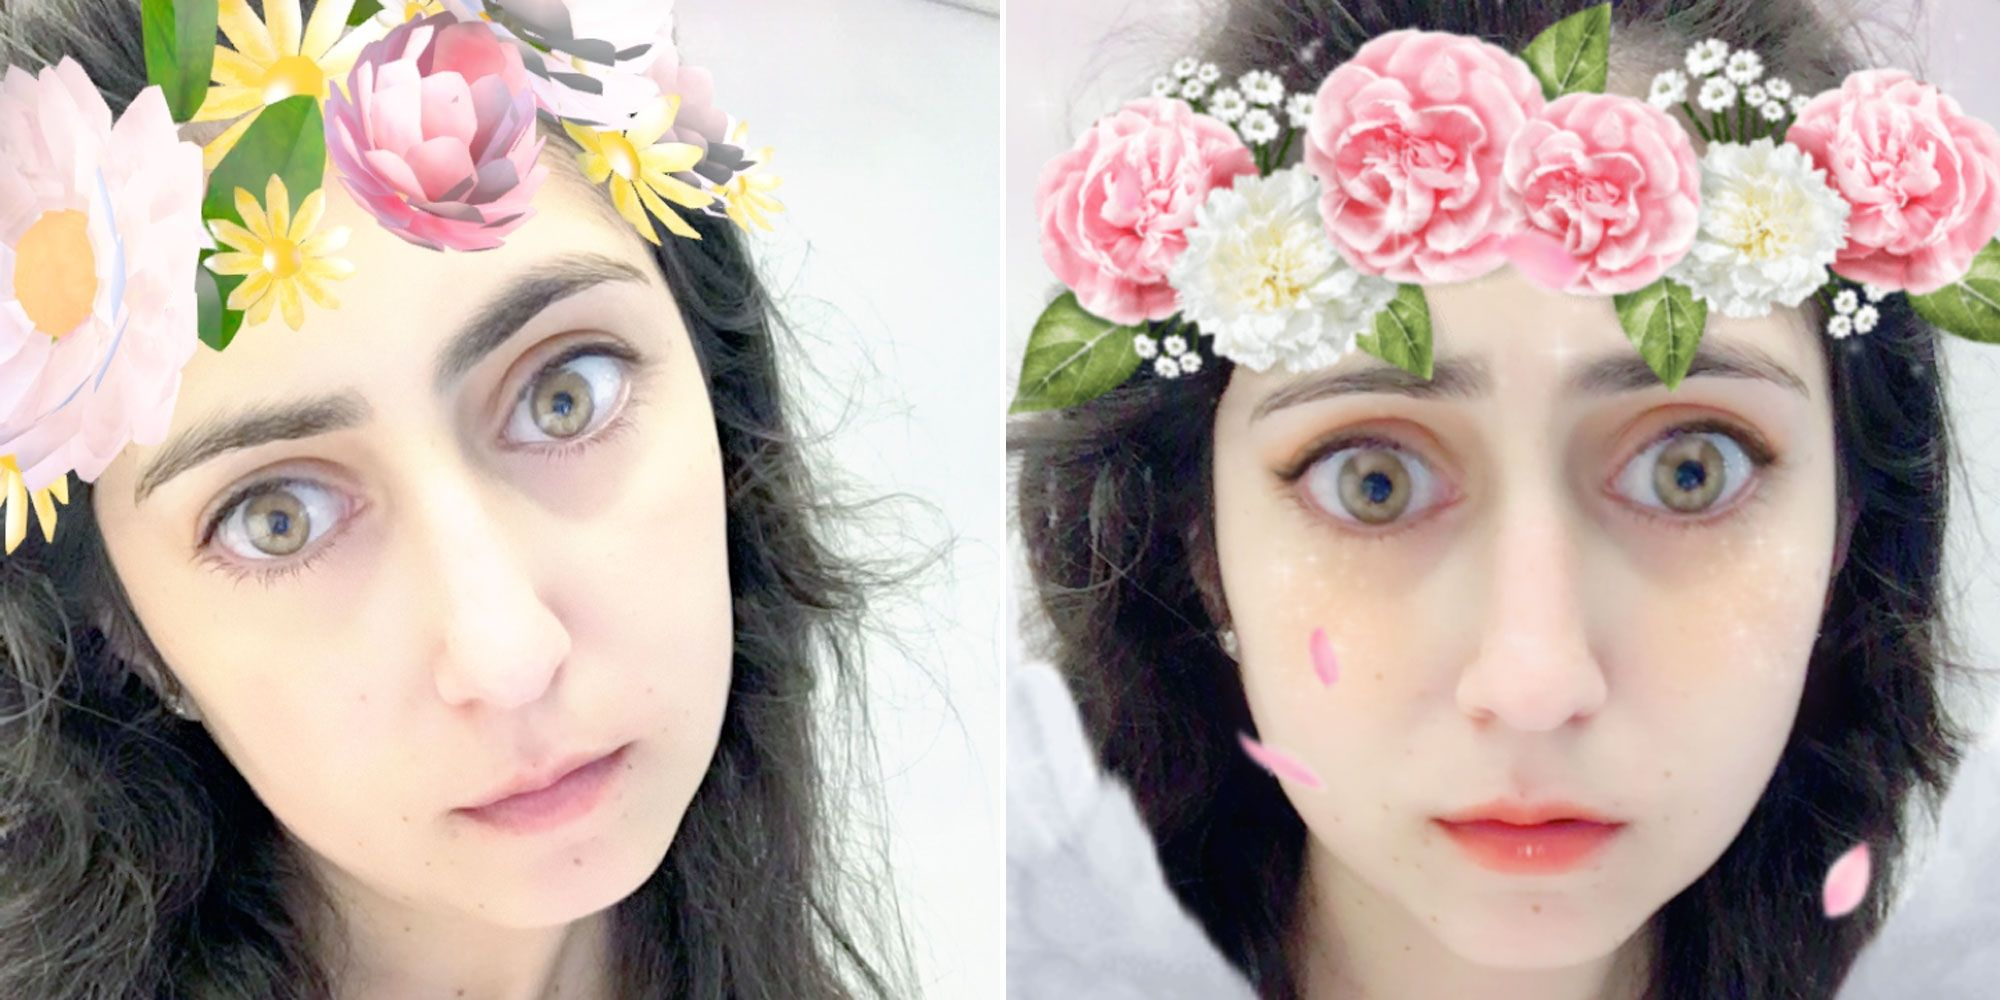 This new app has a million more selfie filters than snapchat izmirmasajfo